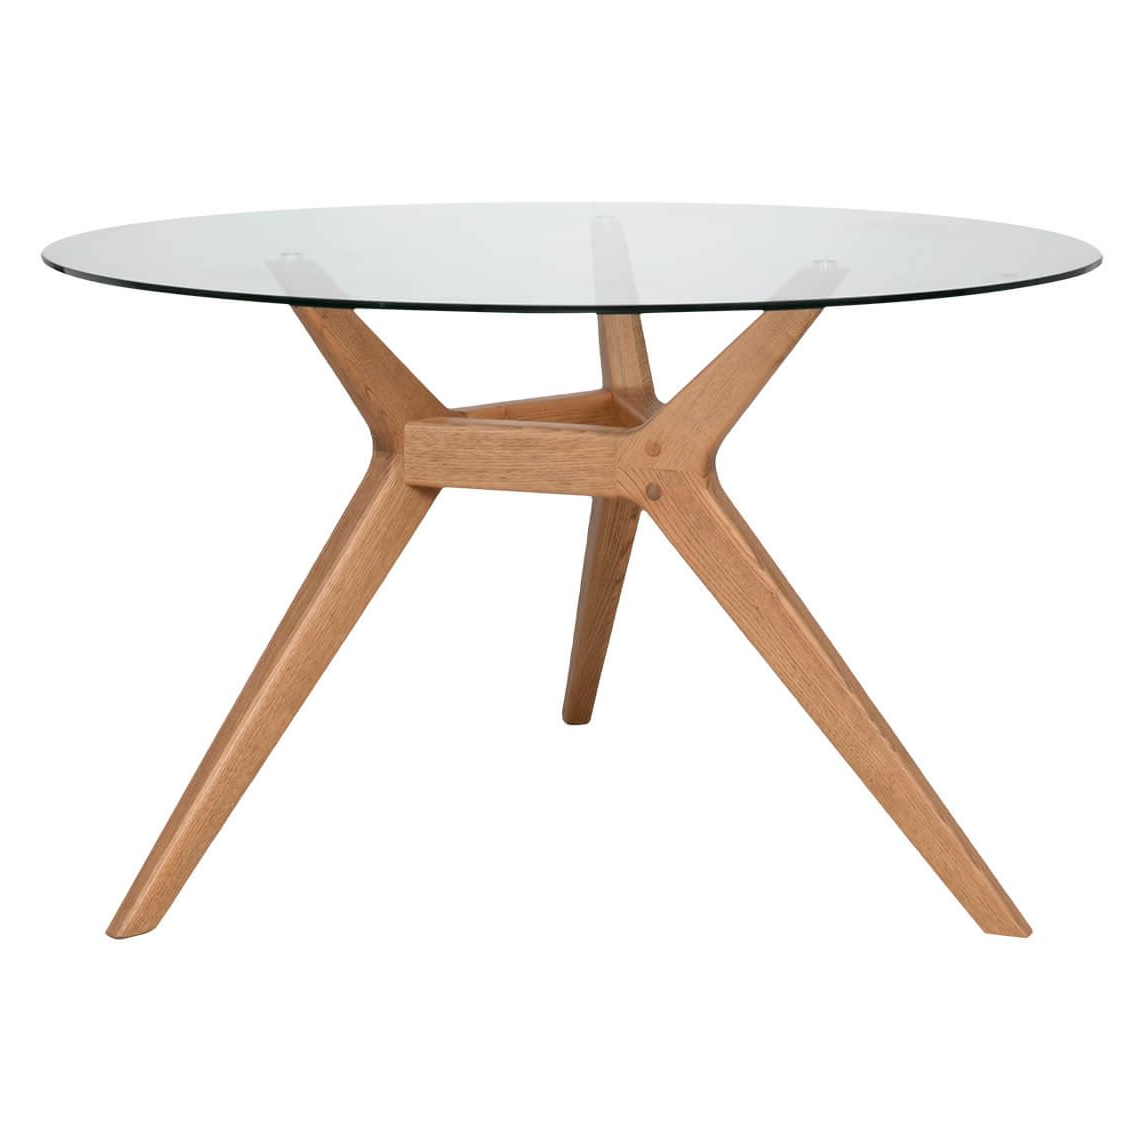 Most Popular Arco 130cm Diameter Round Dining Table, Natural & Glass With Round Dining Tables With Glass Top (View 27 of 30)